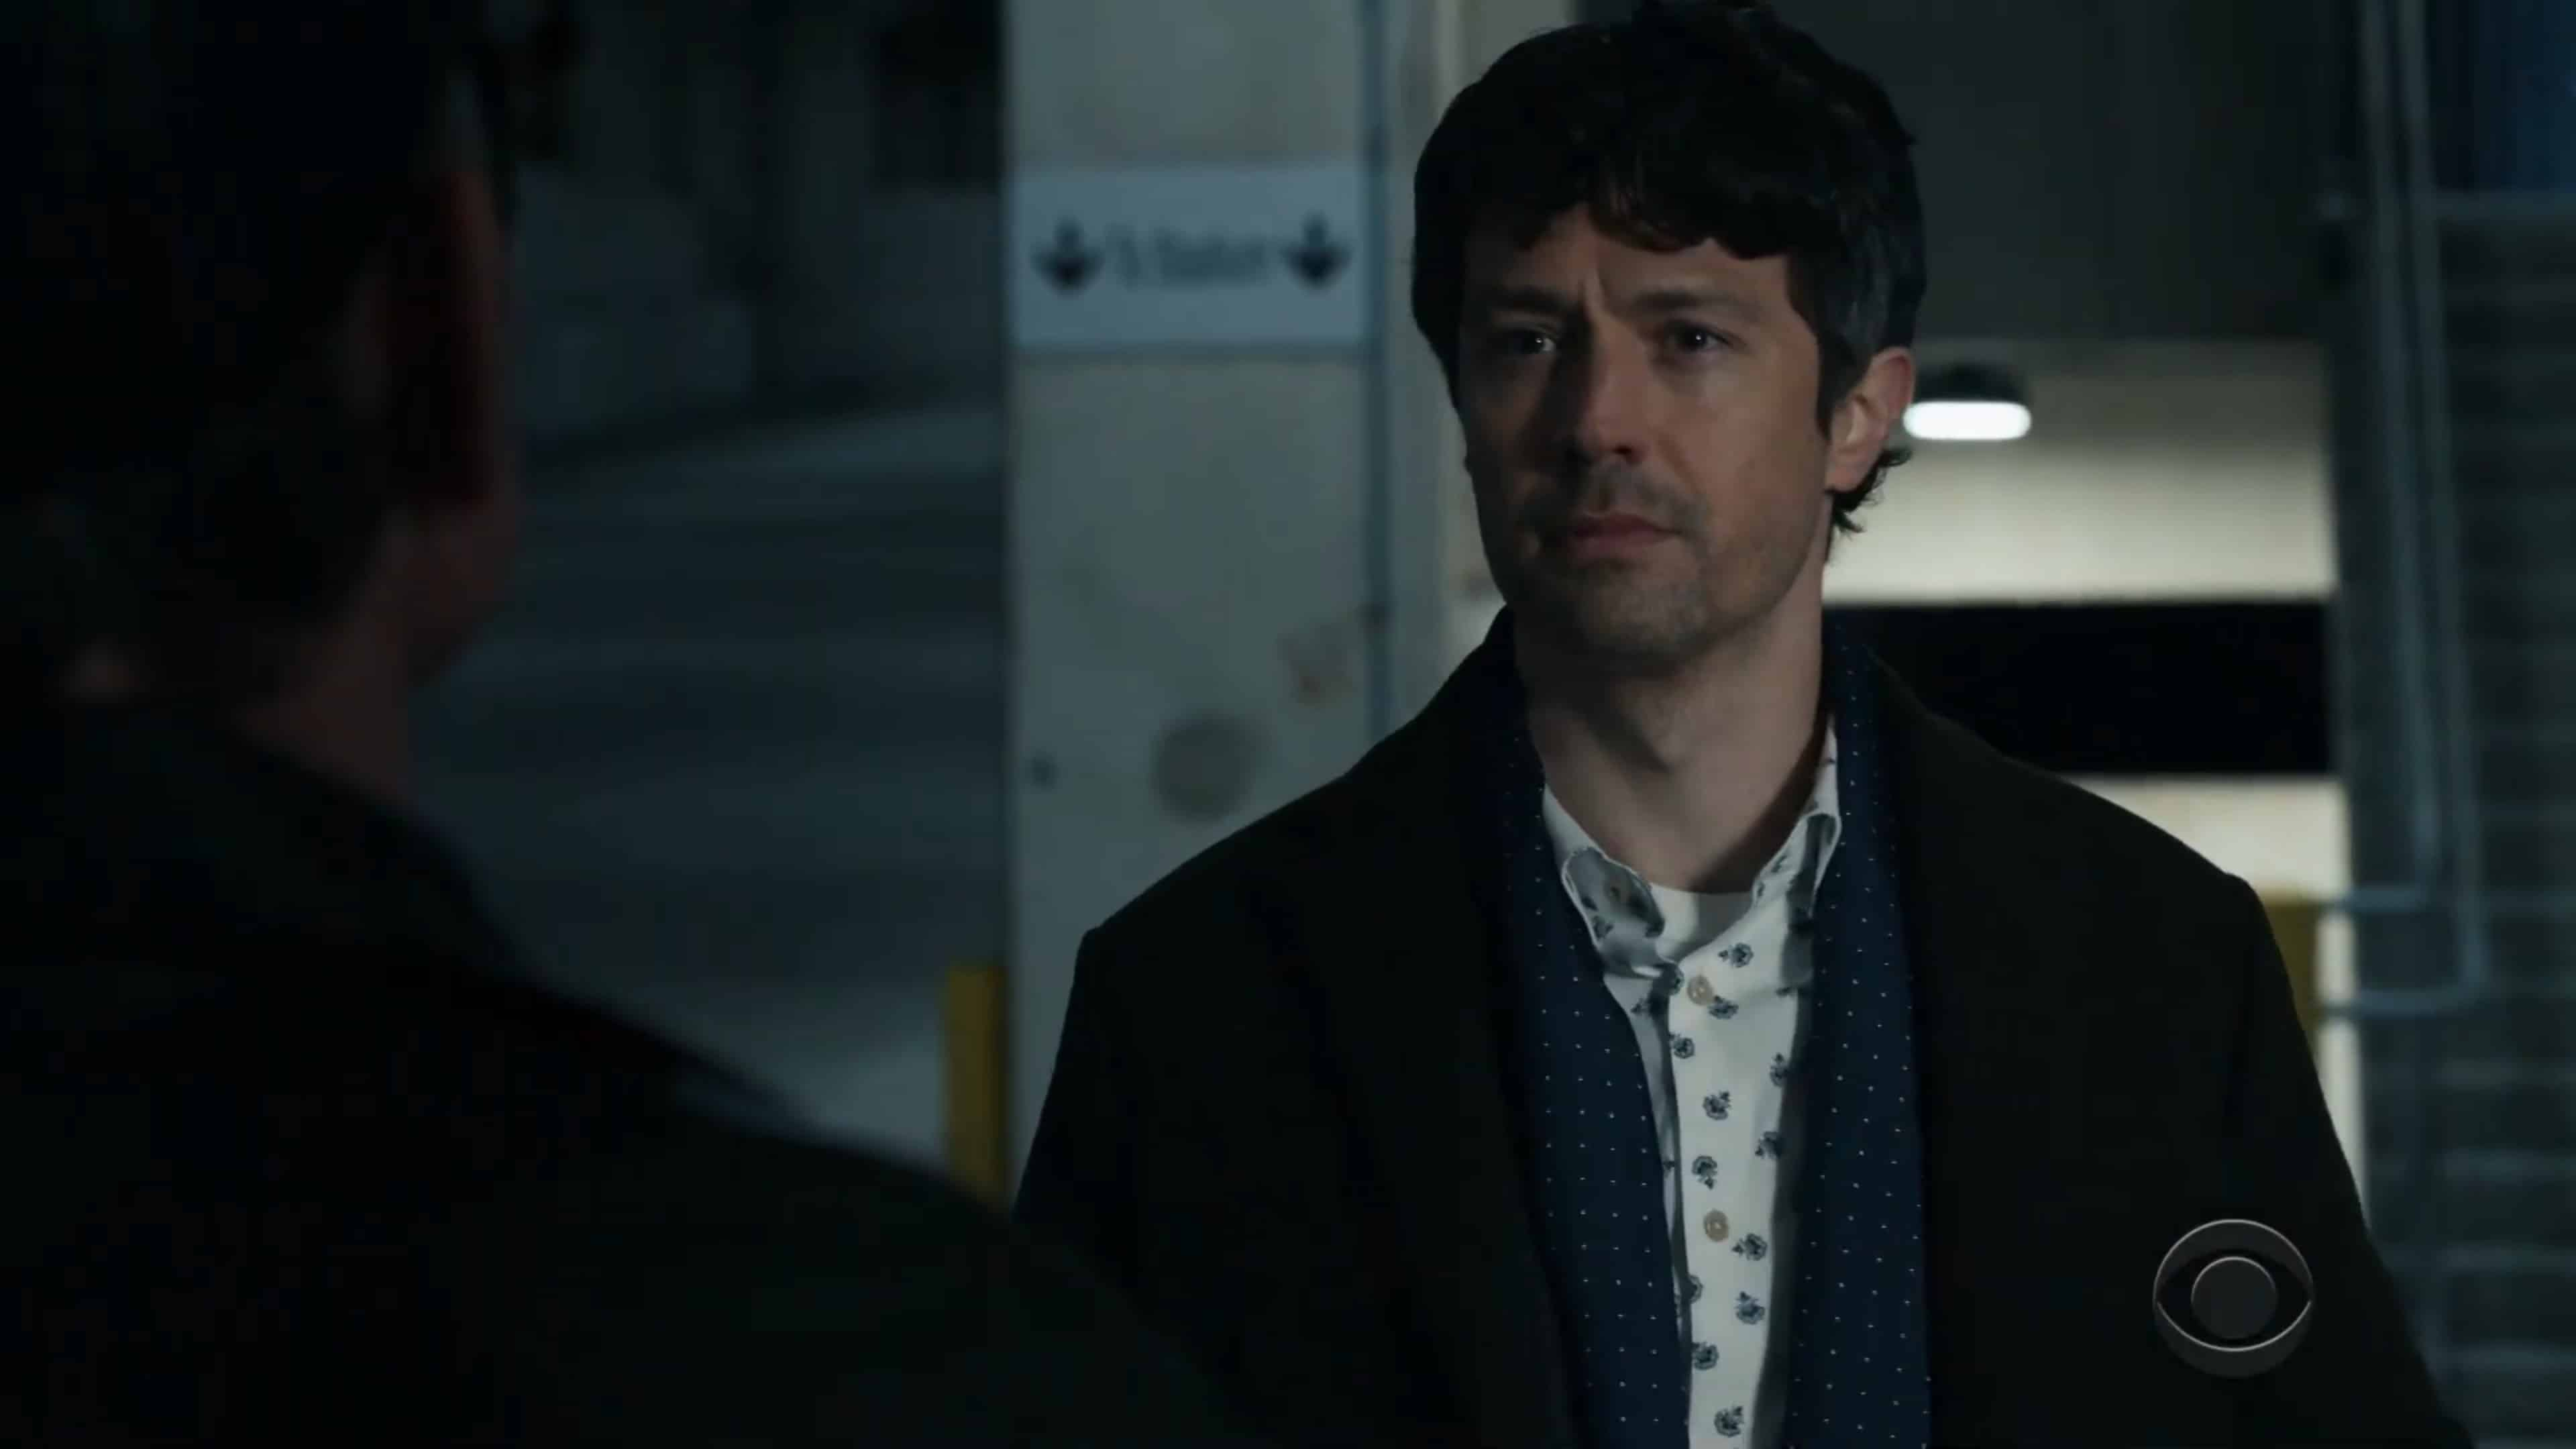 Dorian (Christian Coulson), a pompous egomaniac who discovers a God algorithm that can decrypt any government or organization's system